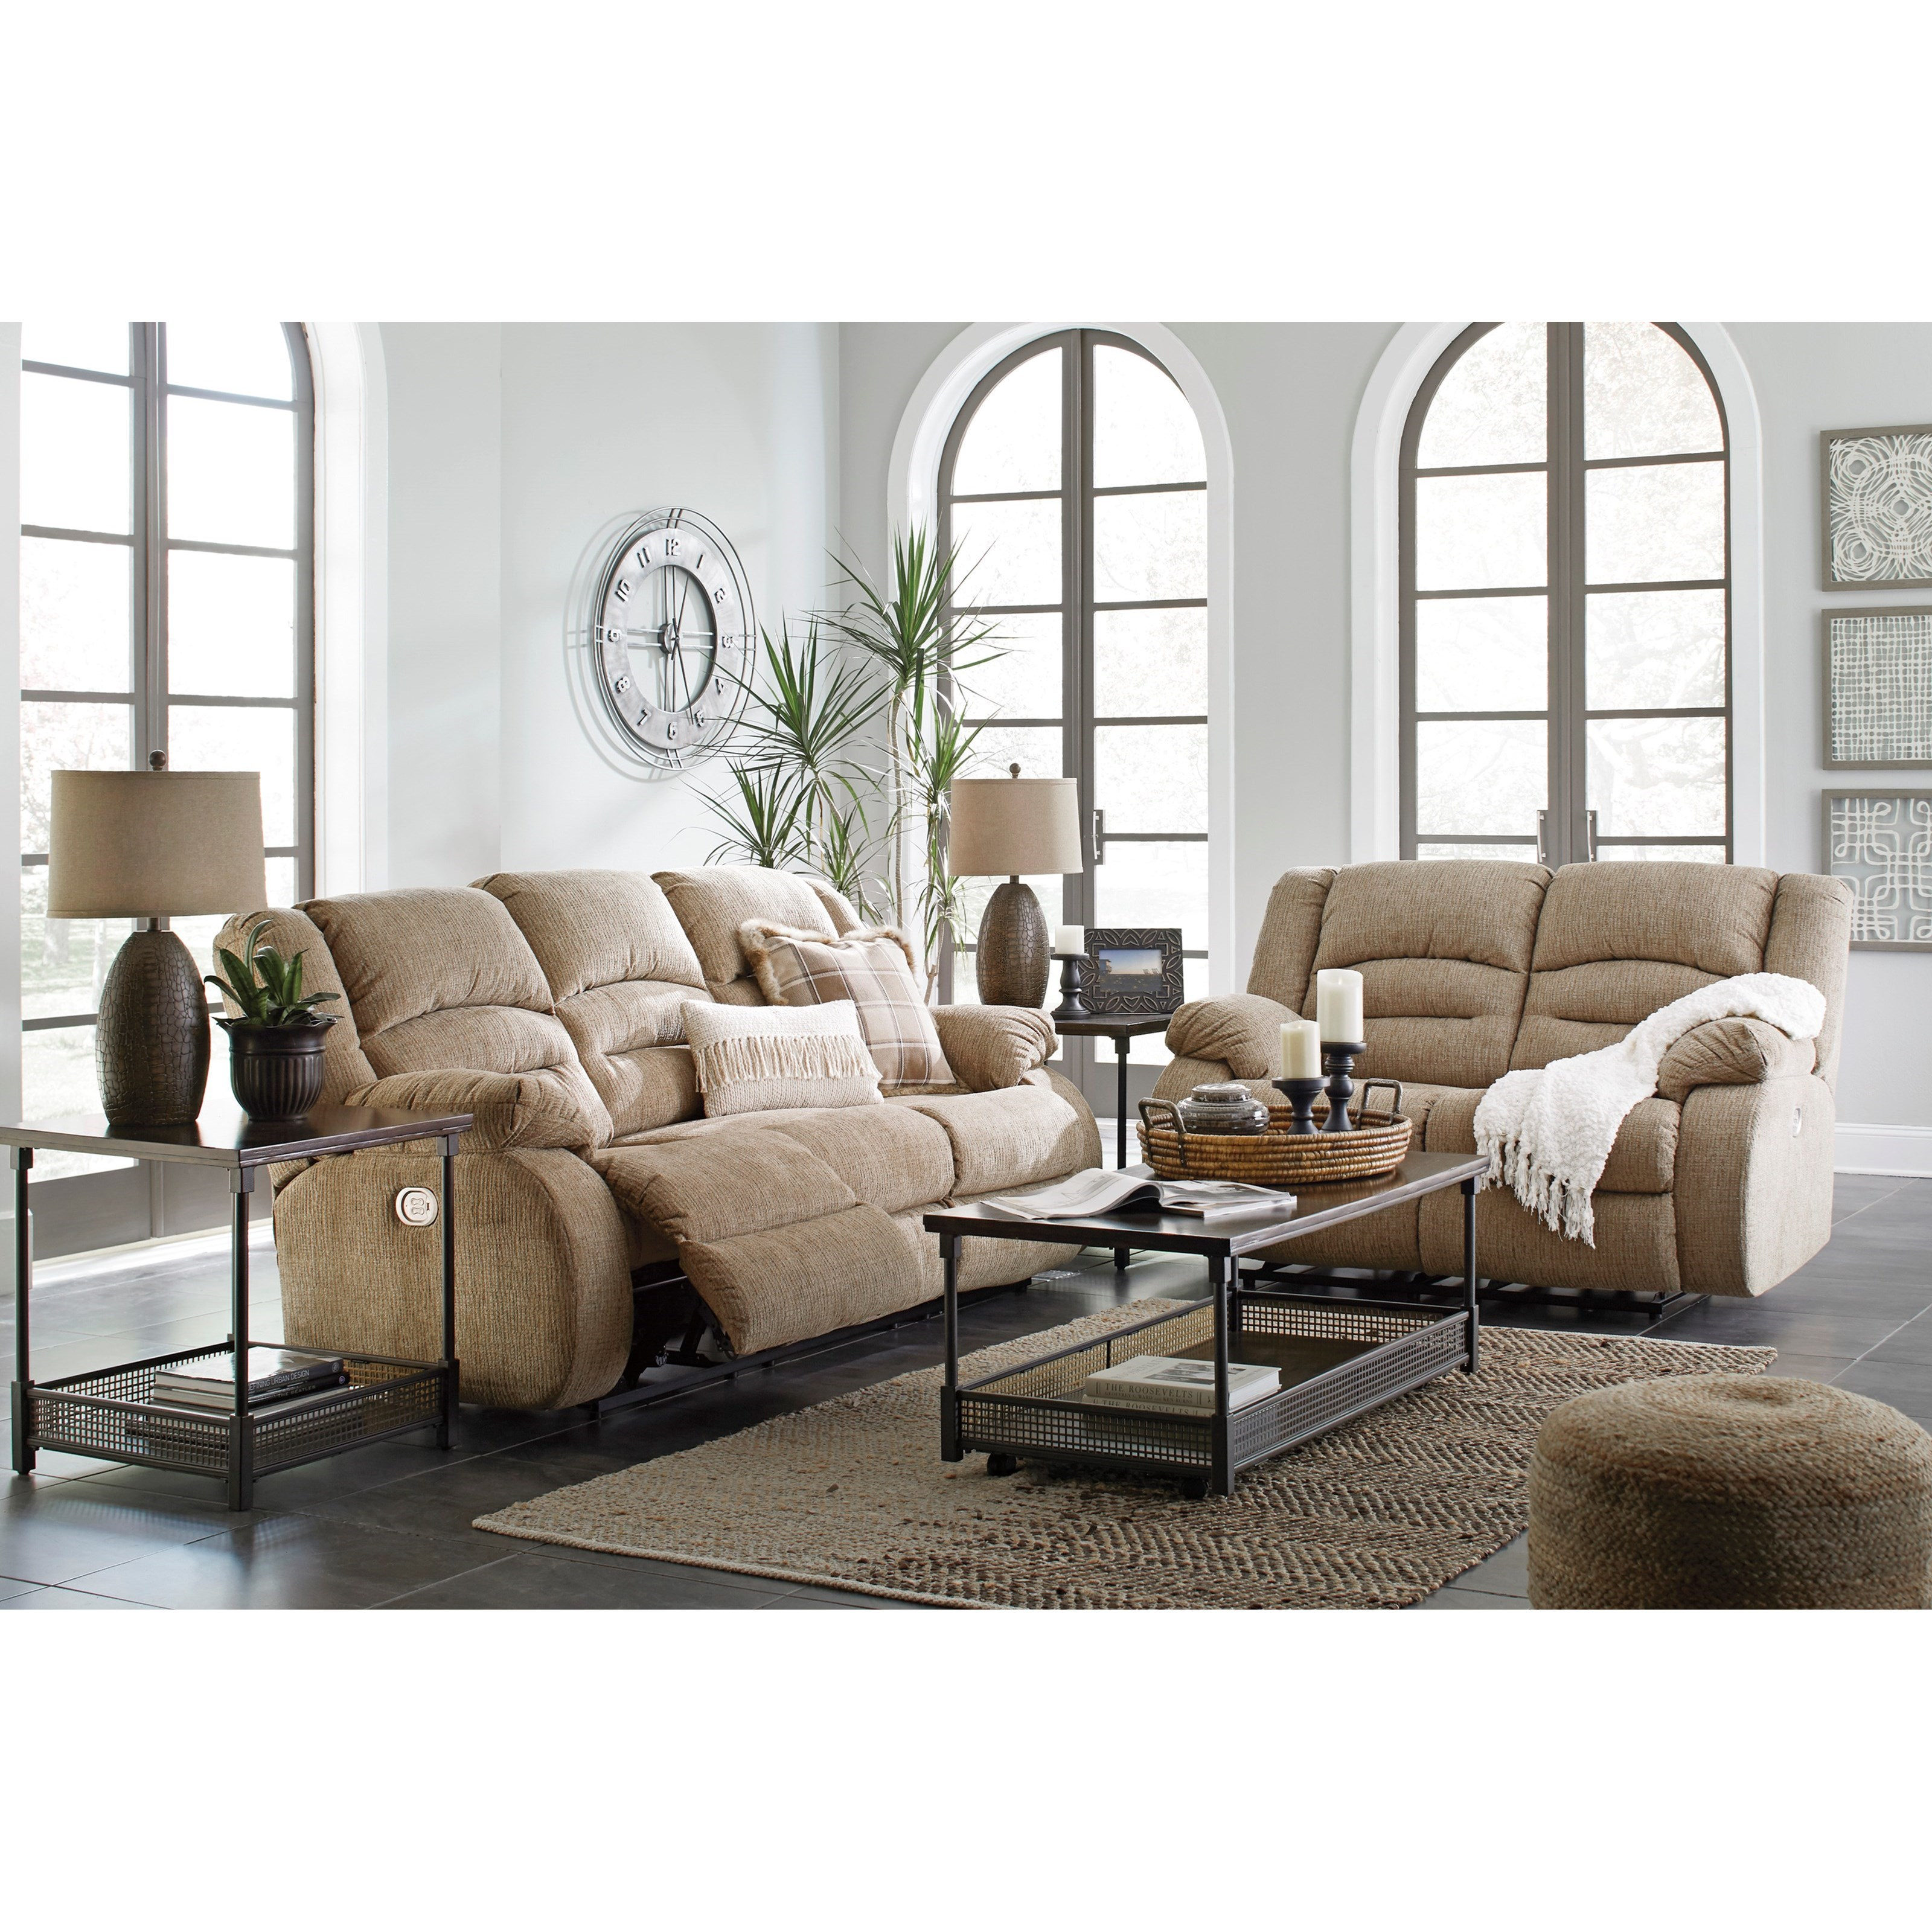 Signature design by ashley labarre reclining living room for Living room furniture groups